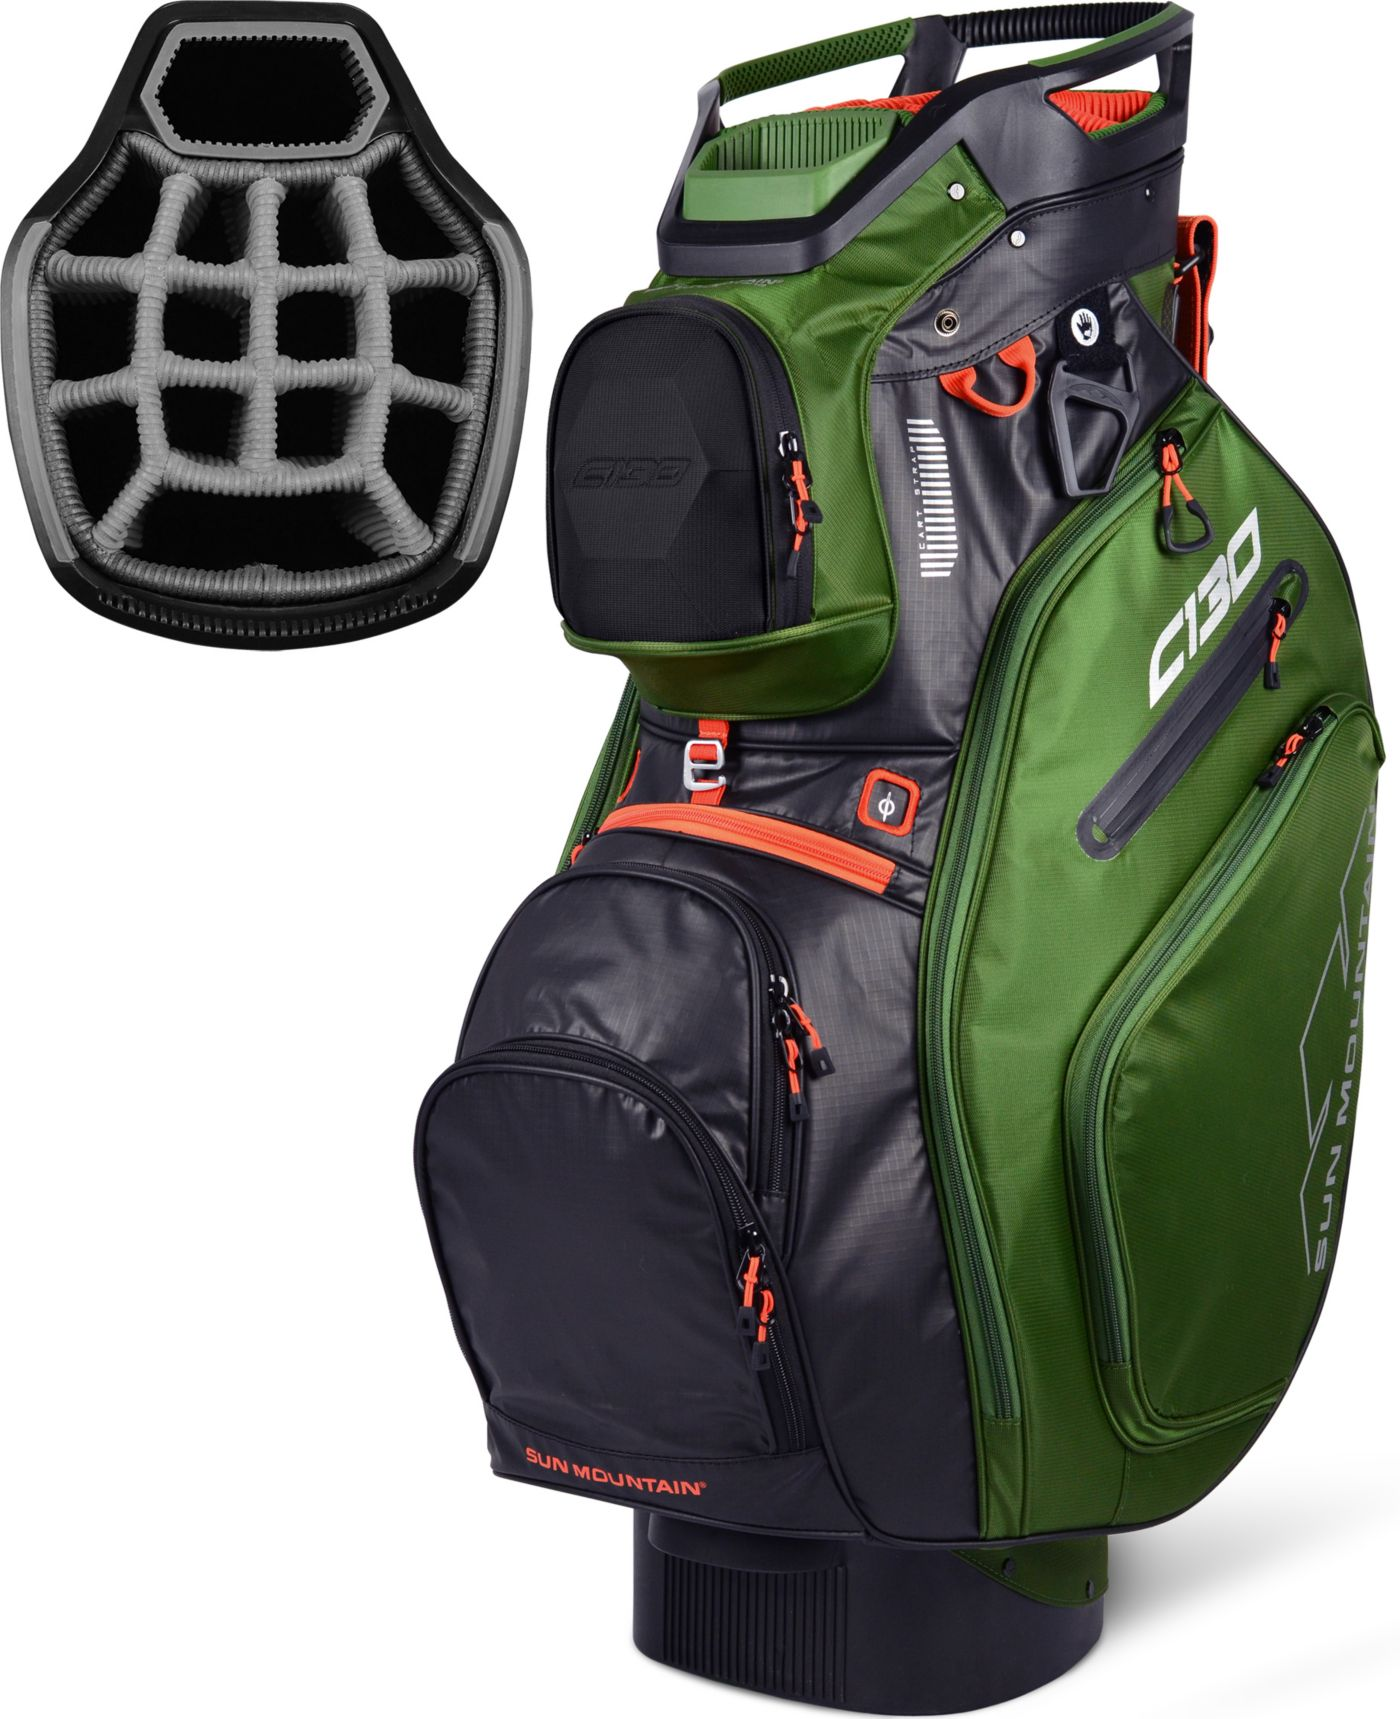 Sun Mountain 2019 C-130 Cart Golf Bag